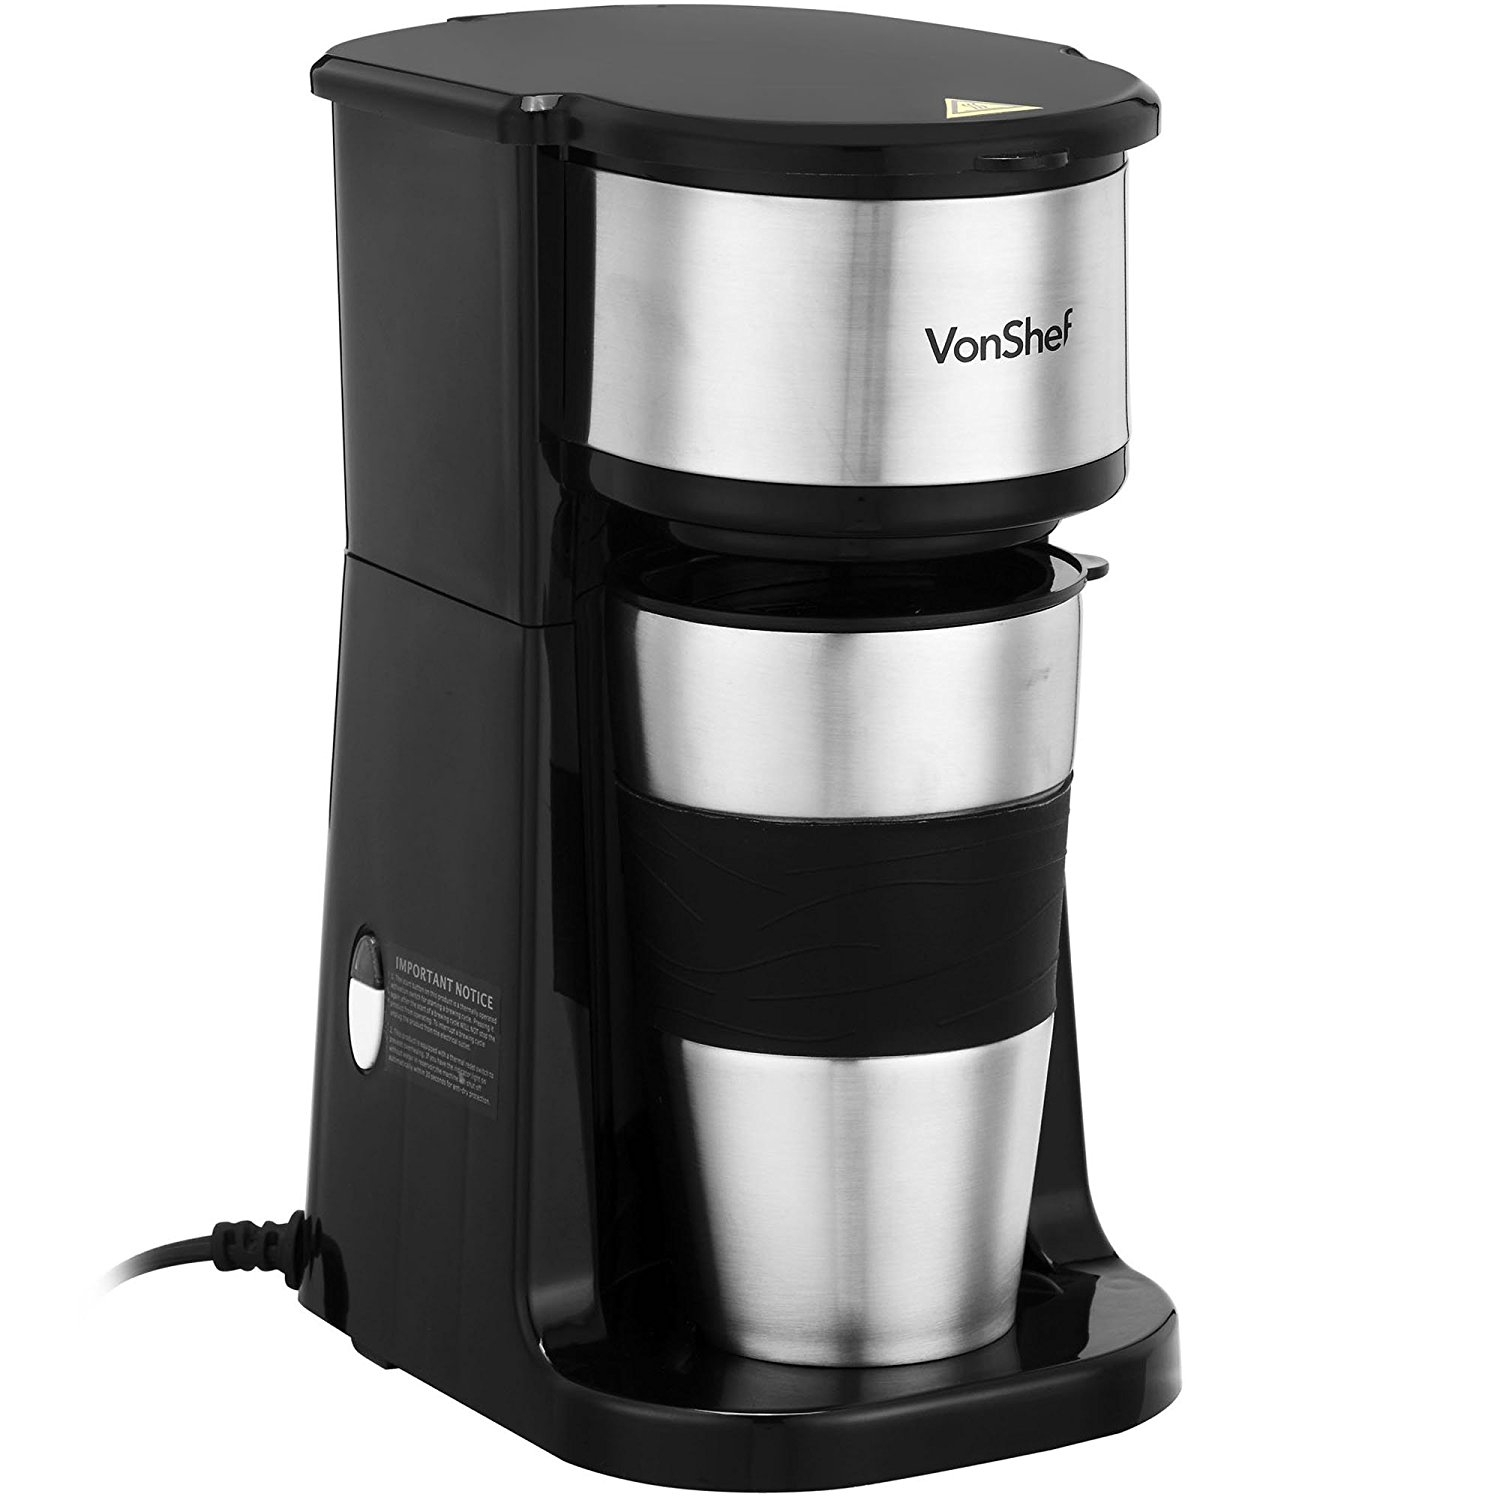 One Cup Coffee Maker ~ Vonshef one cup coffee maker for volts